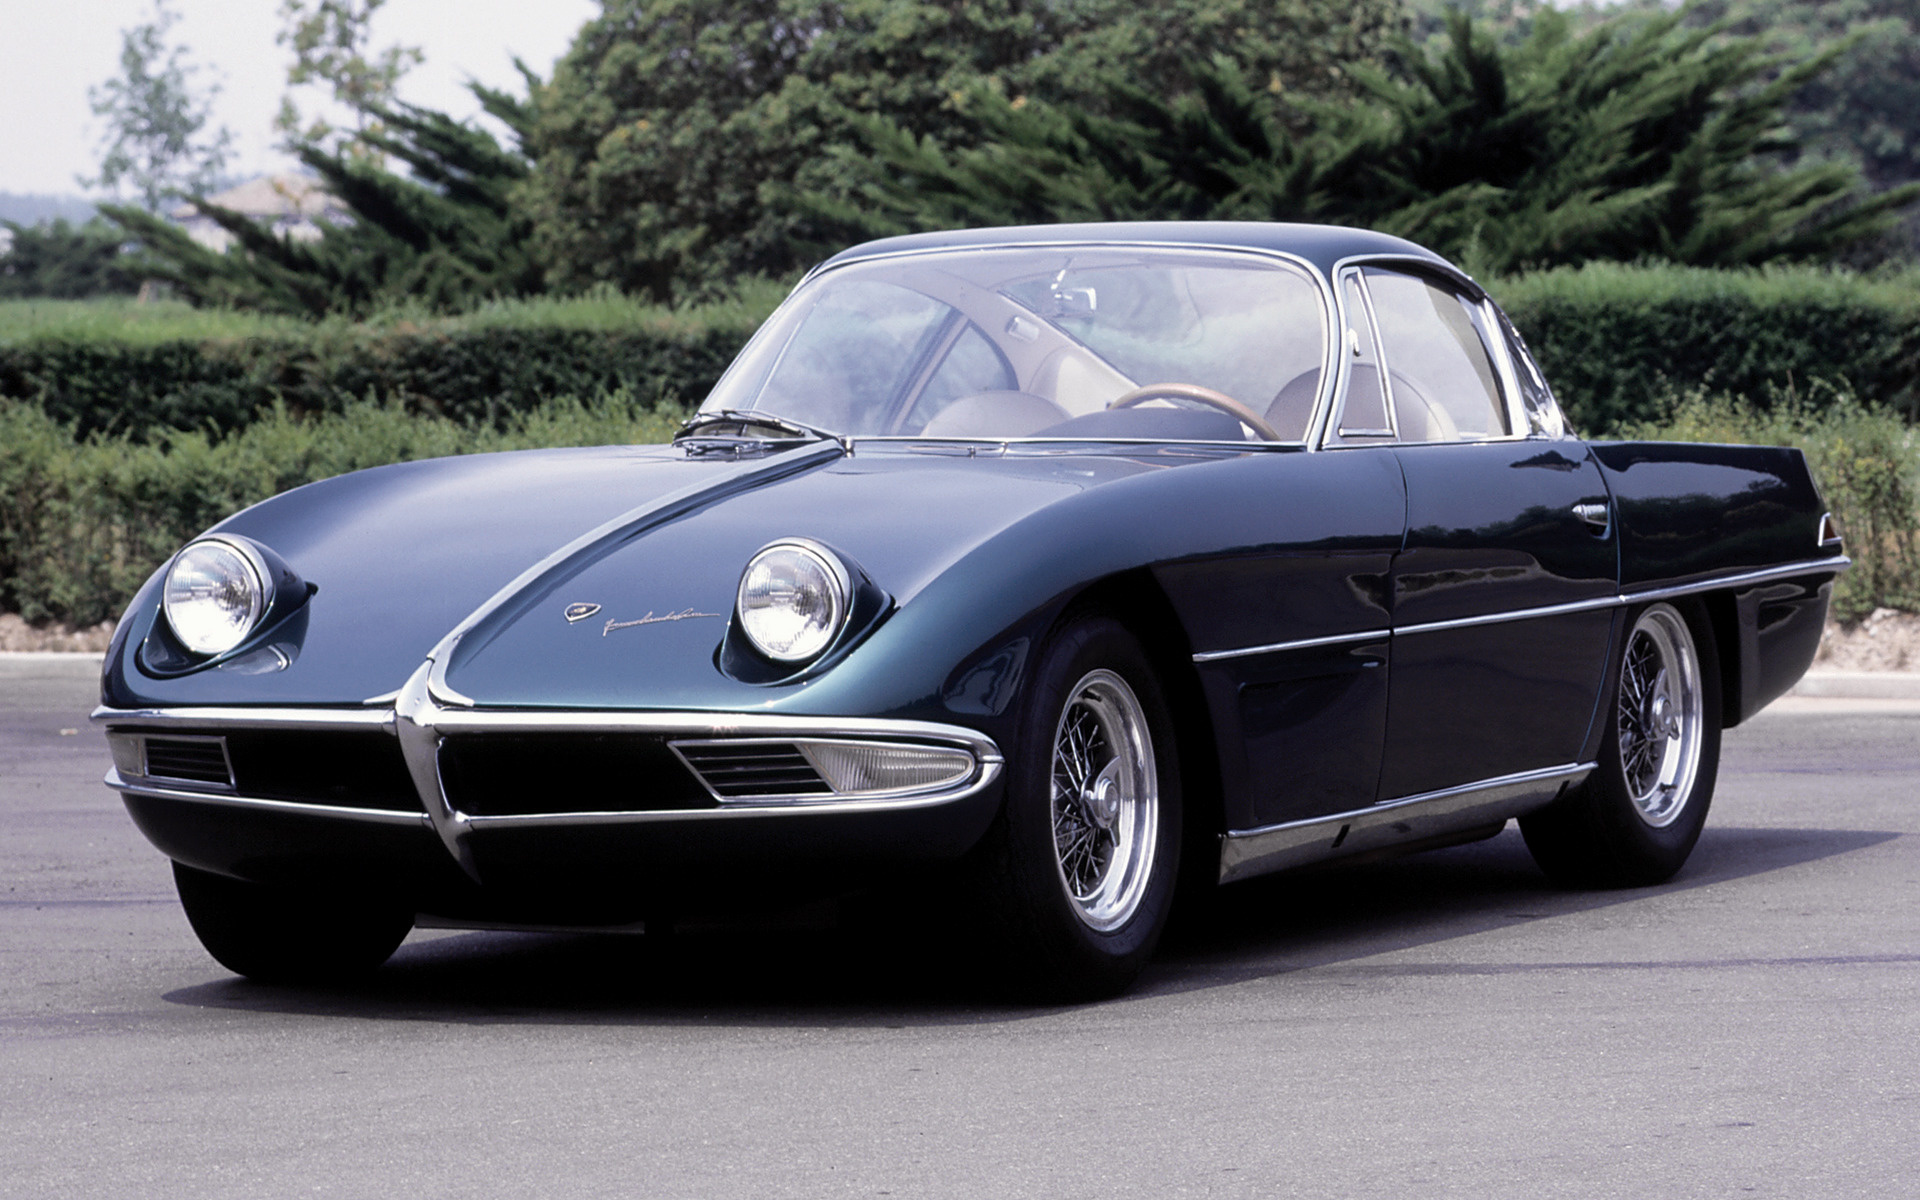 1963 Lamborghini 350 GTV Prototype - Wallpapers and HD ...